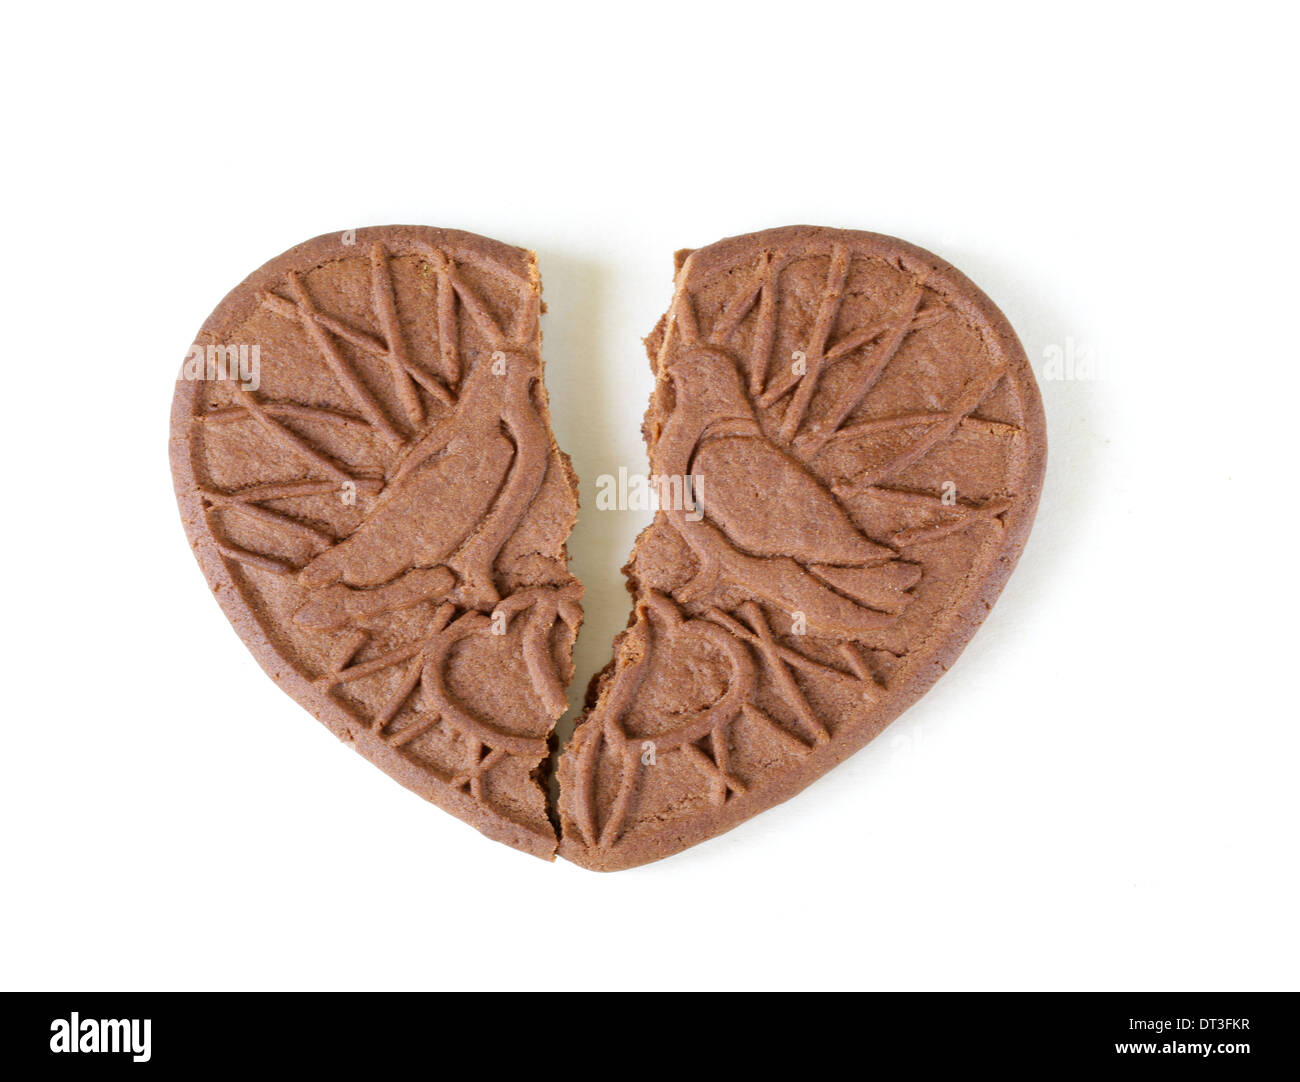 Broken heart cookies on a white background a symbol of divorce broken heart cookies on a white background a symbol of divorce buycottarizona